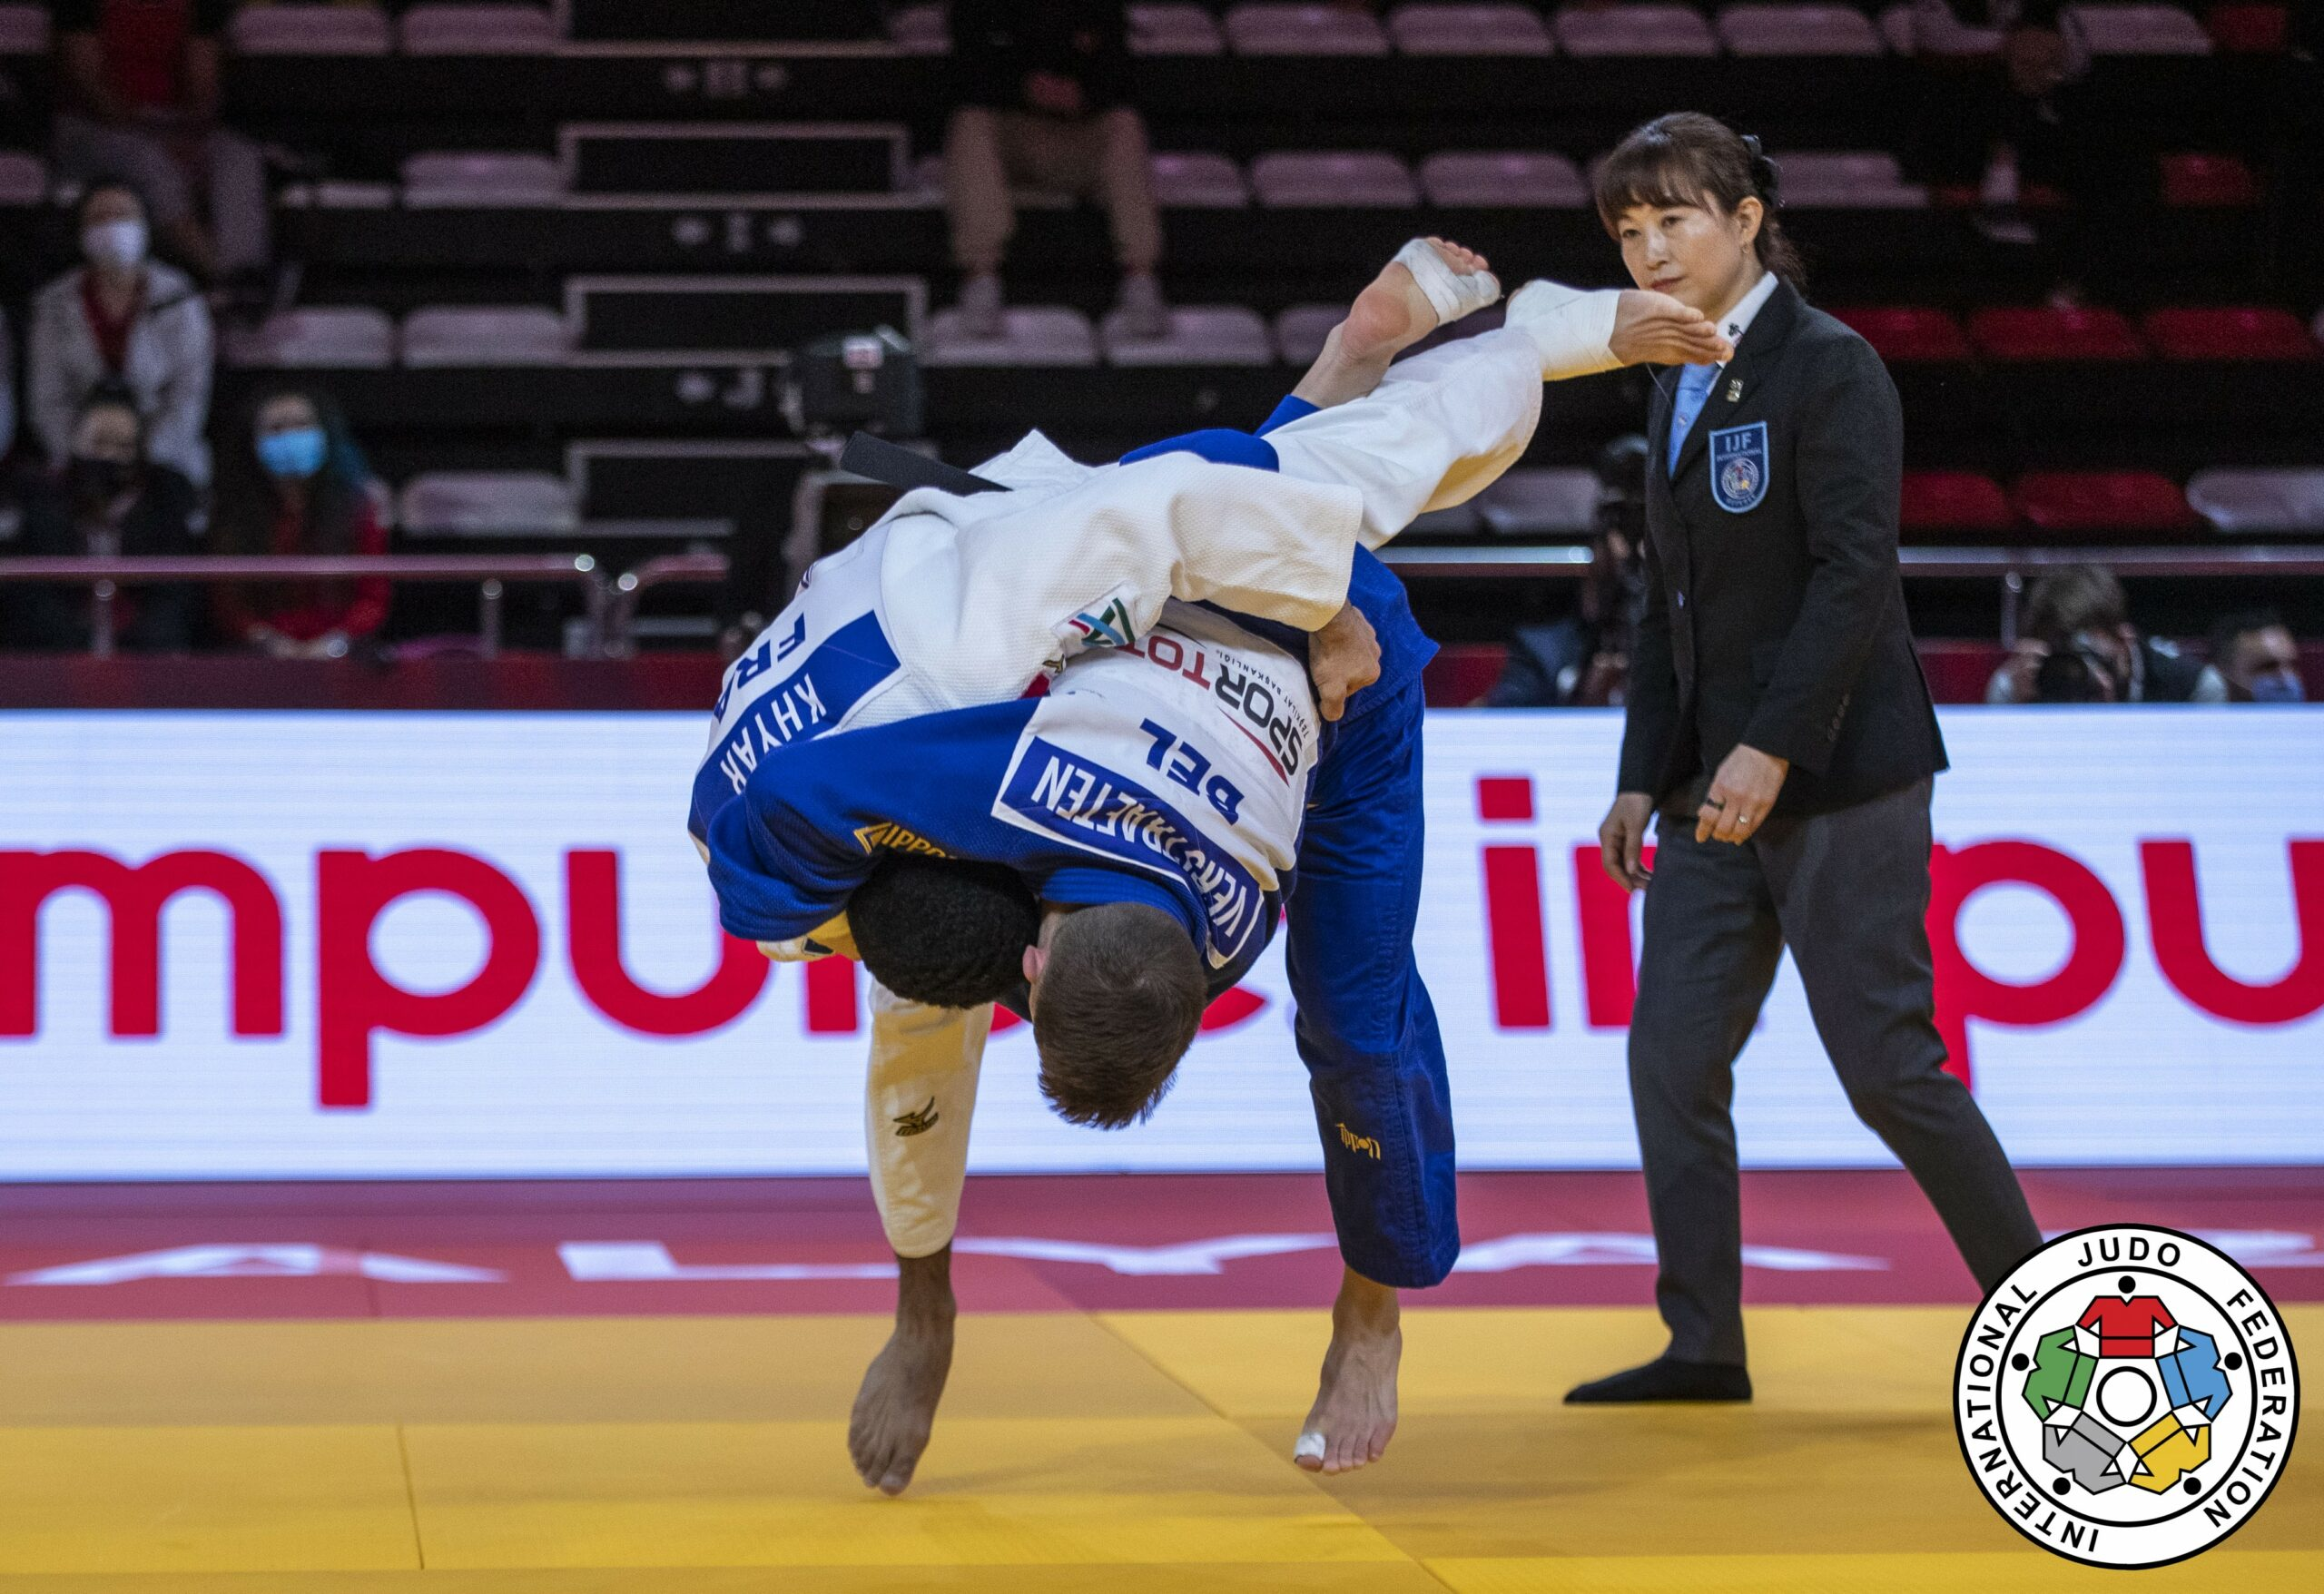 VERSTRAETEN HITS THE BIG TIME WITH GRAND SLAM GOLD IN ANTALYA